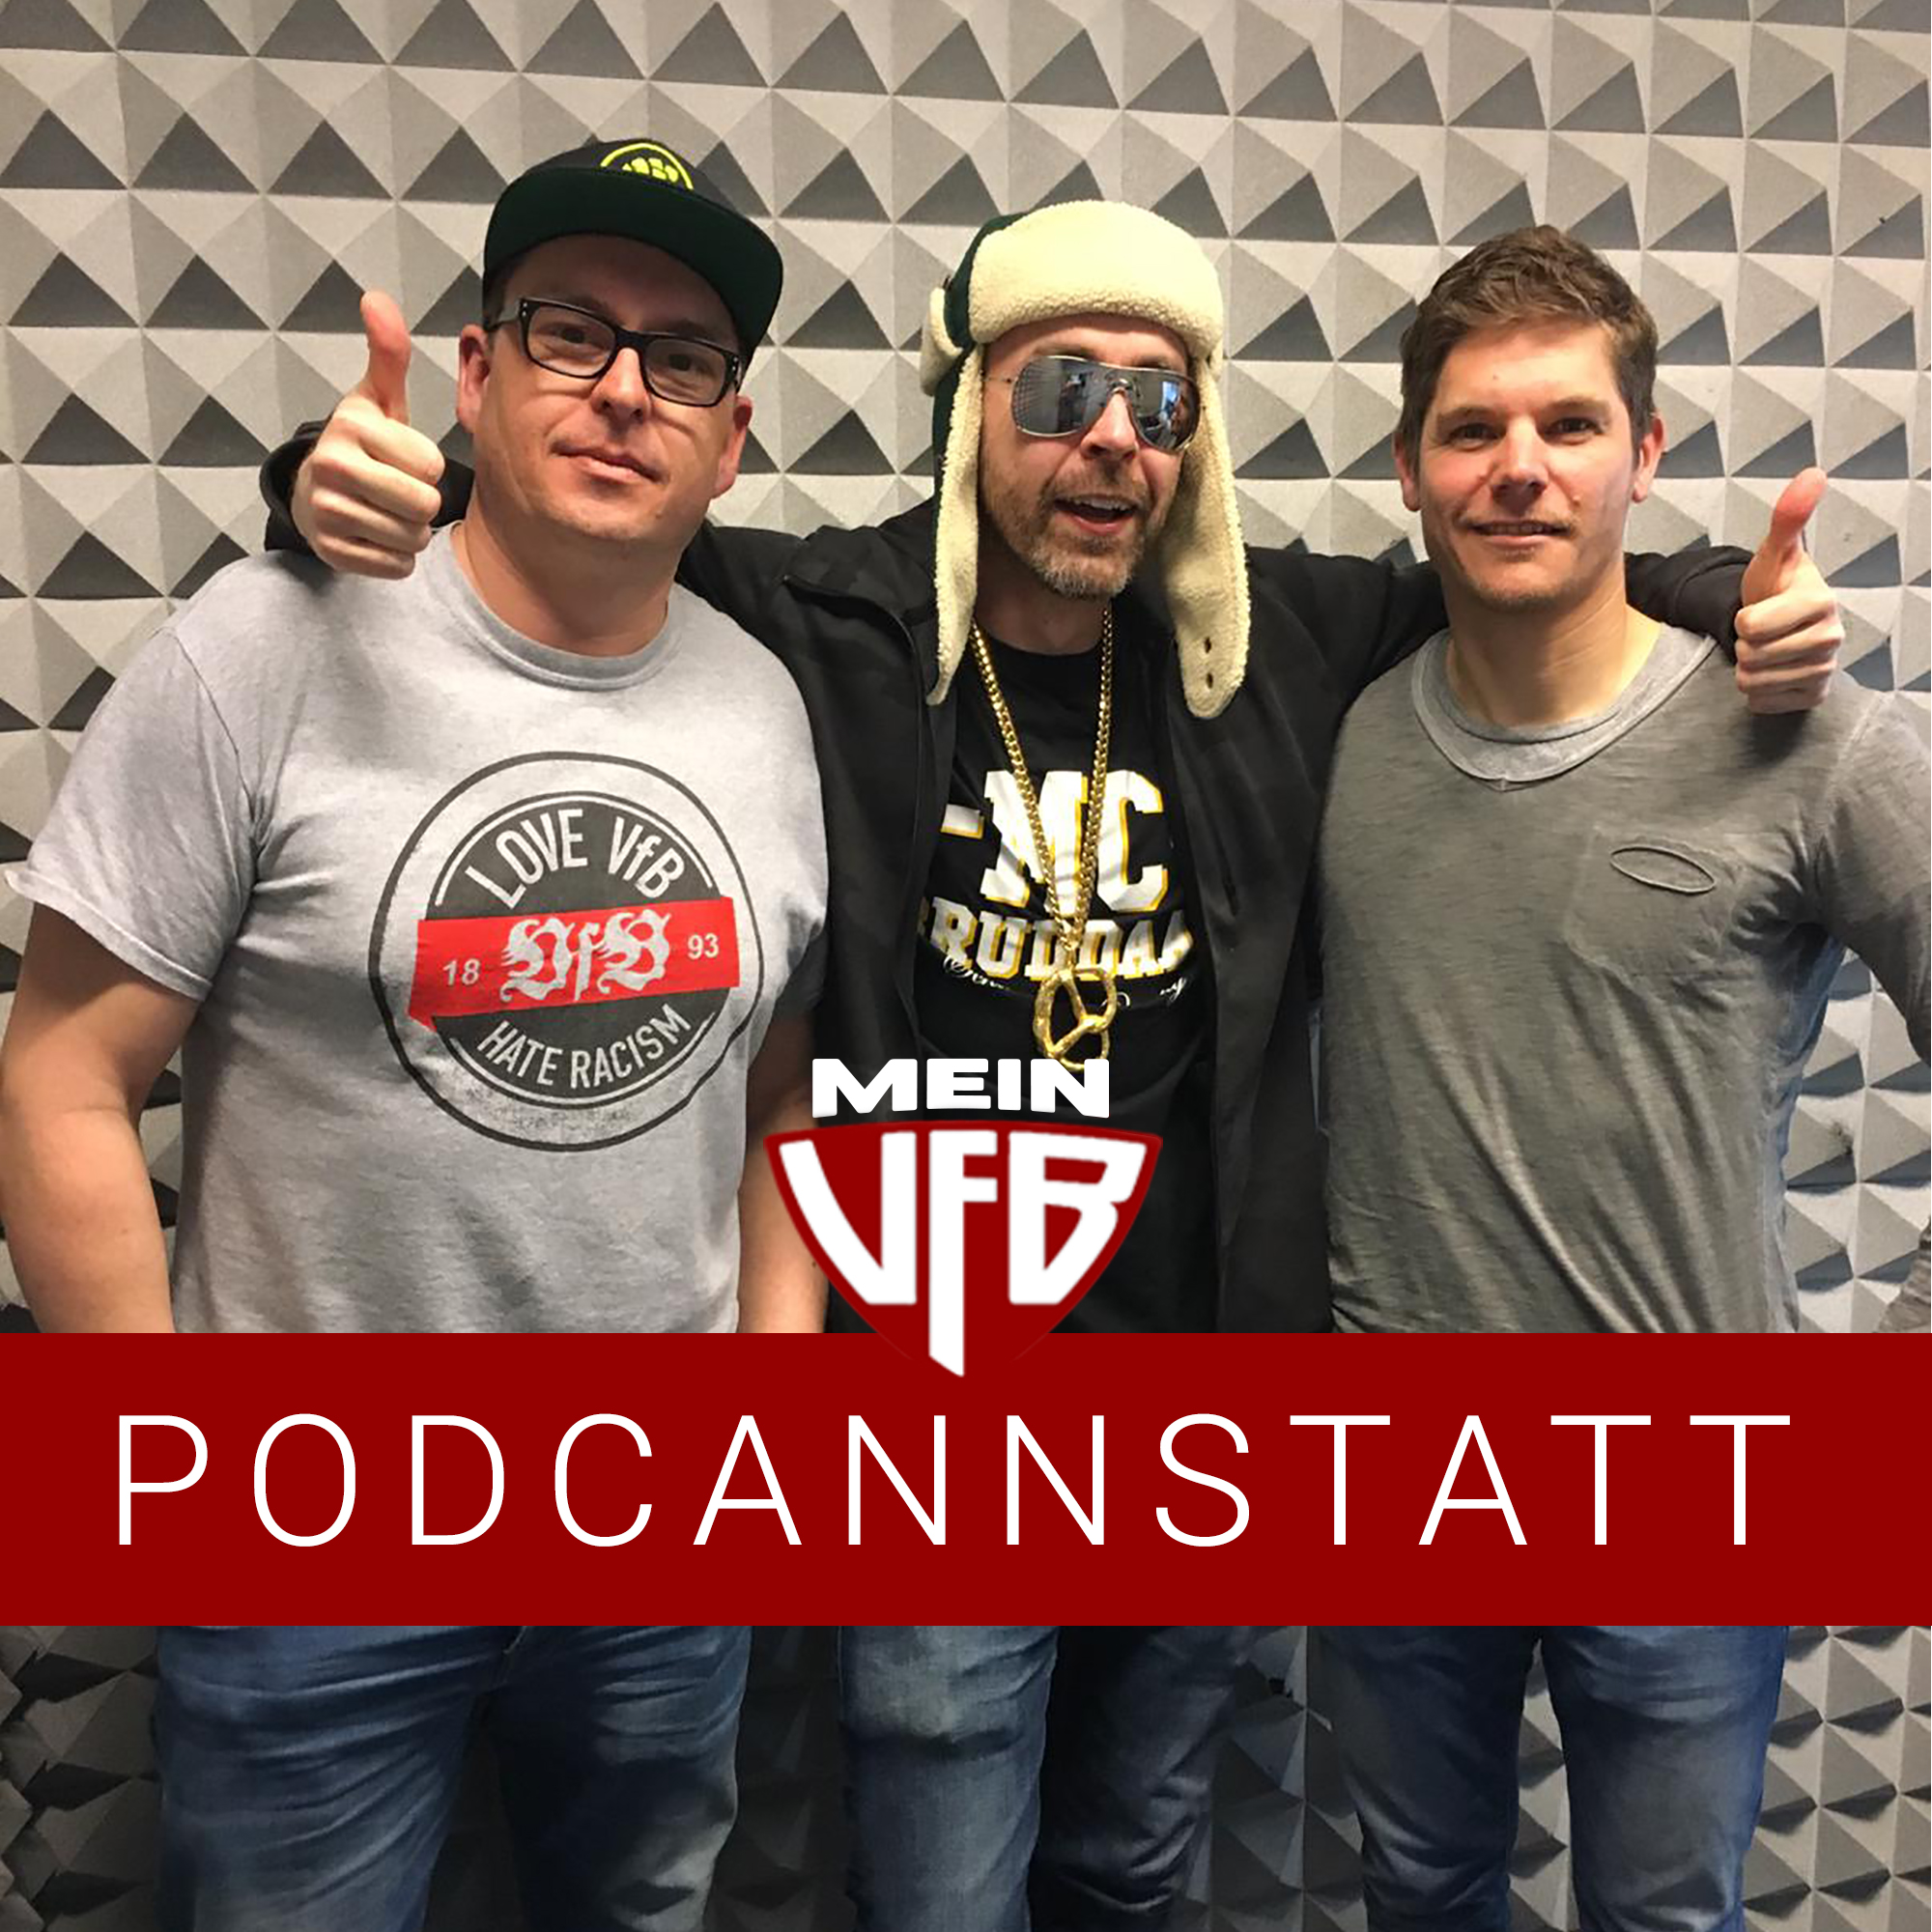 Mein Vfb Podcast